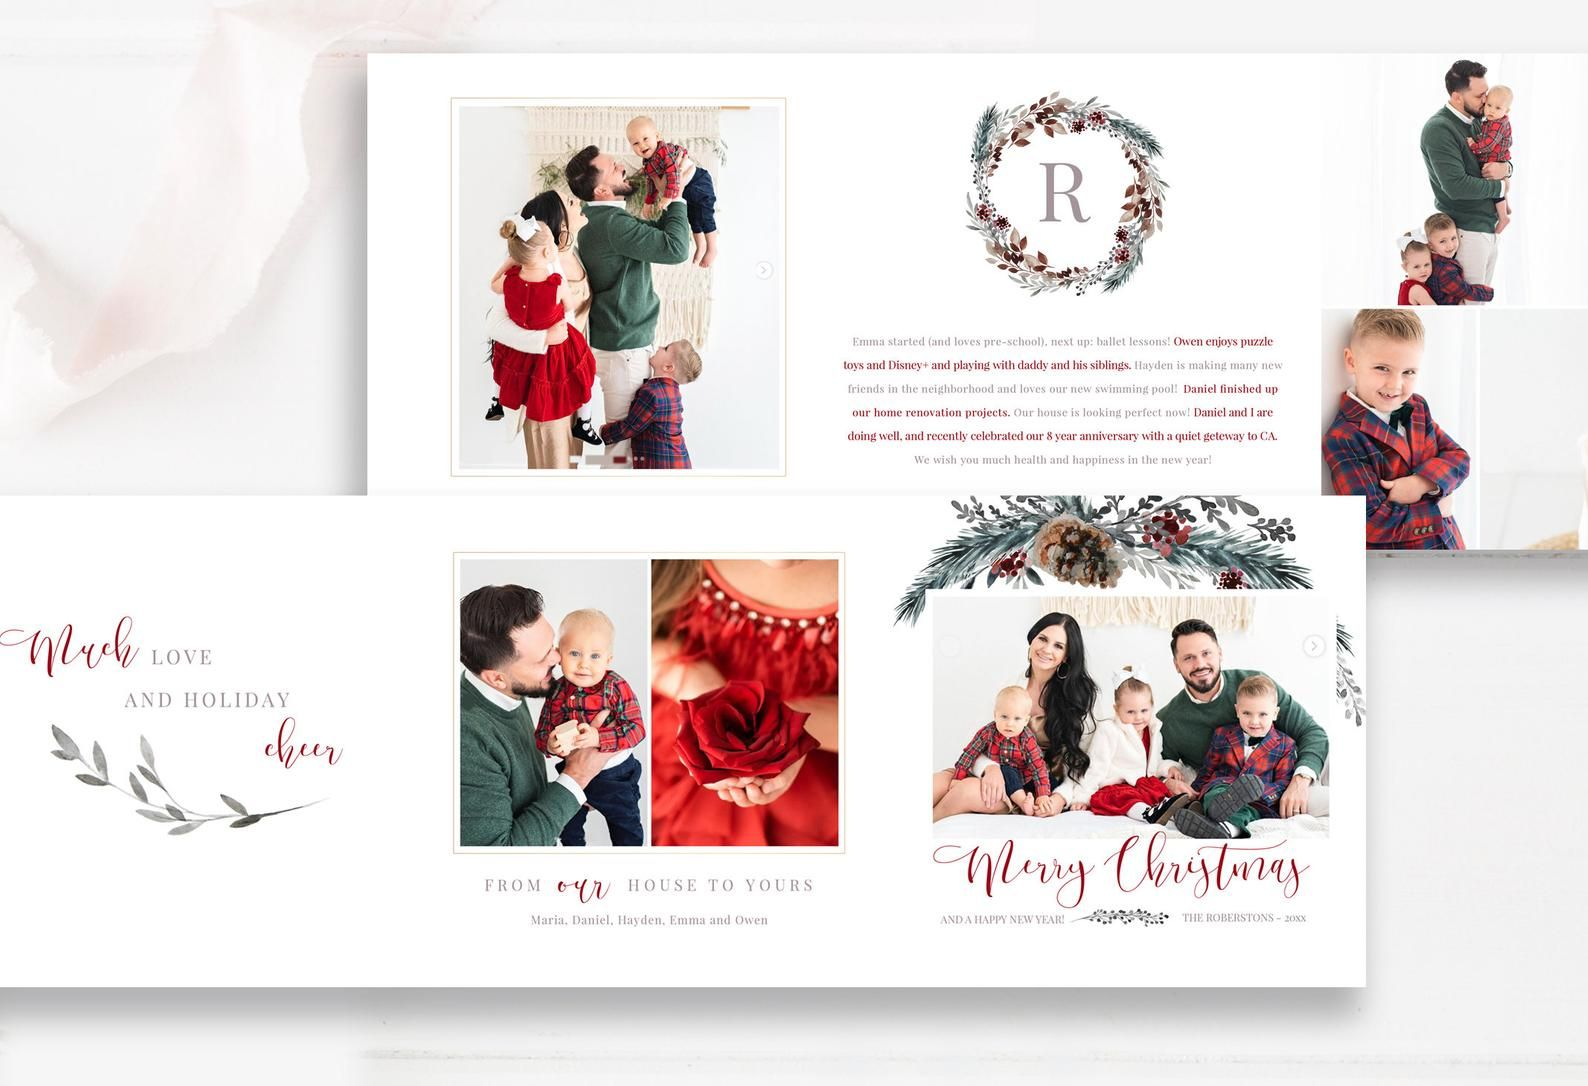 Merry Christmas 5x5 Trifold Photo Card Template Trifold Etsy In 2021 Photo Card Template Christmas Photo Card Template Holiday Photo Cards Design